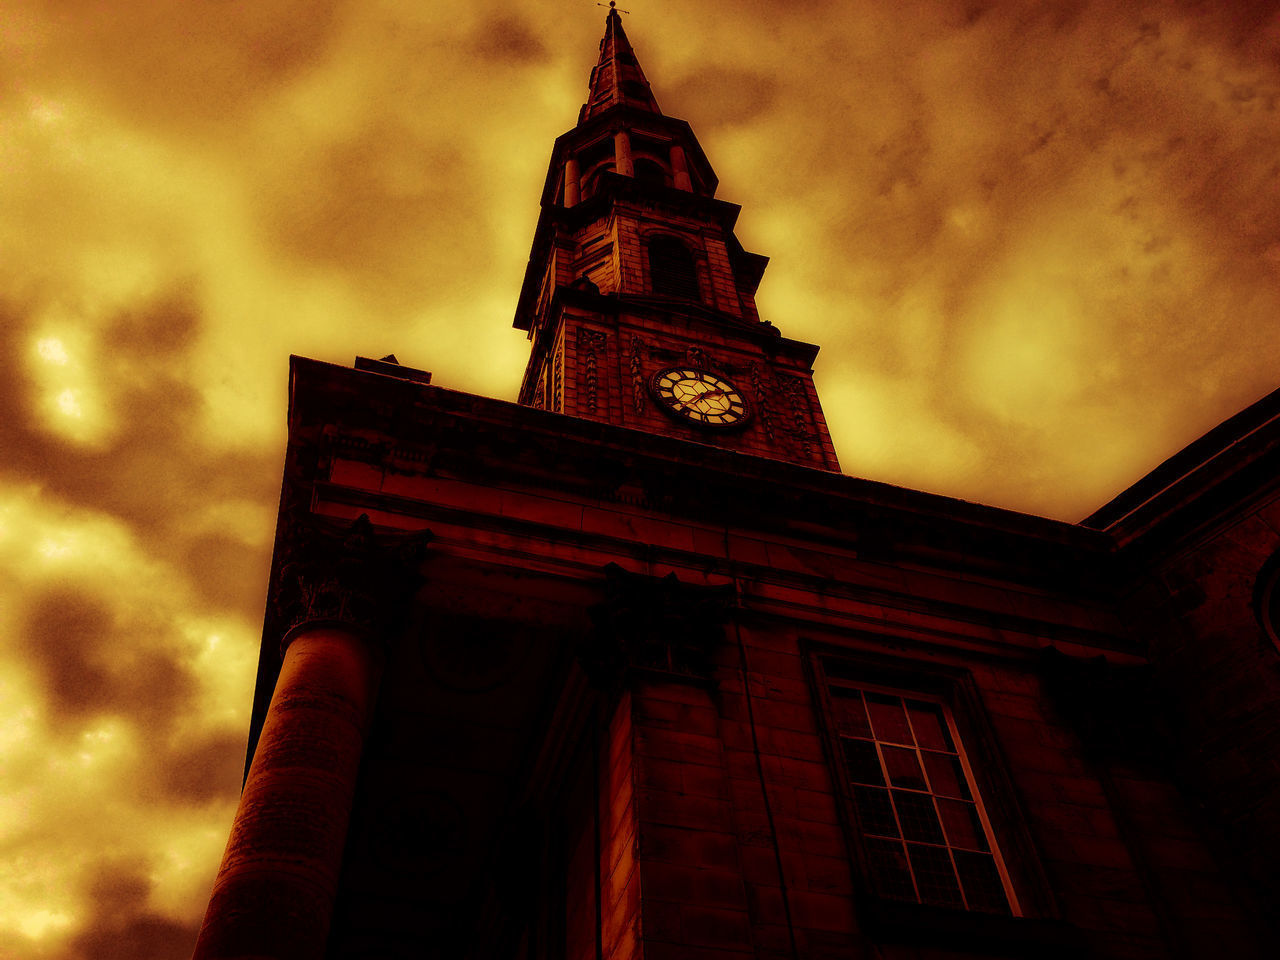 architecture, built structure, building exterior, low angle view, tower, clock tower, sky, cloud - sky, no people, outdoors, religion, history, sunset, bell tower, place of worship, spirituality, clock, travel destinations, day, city